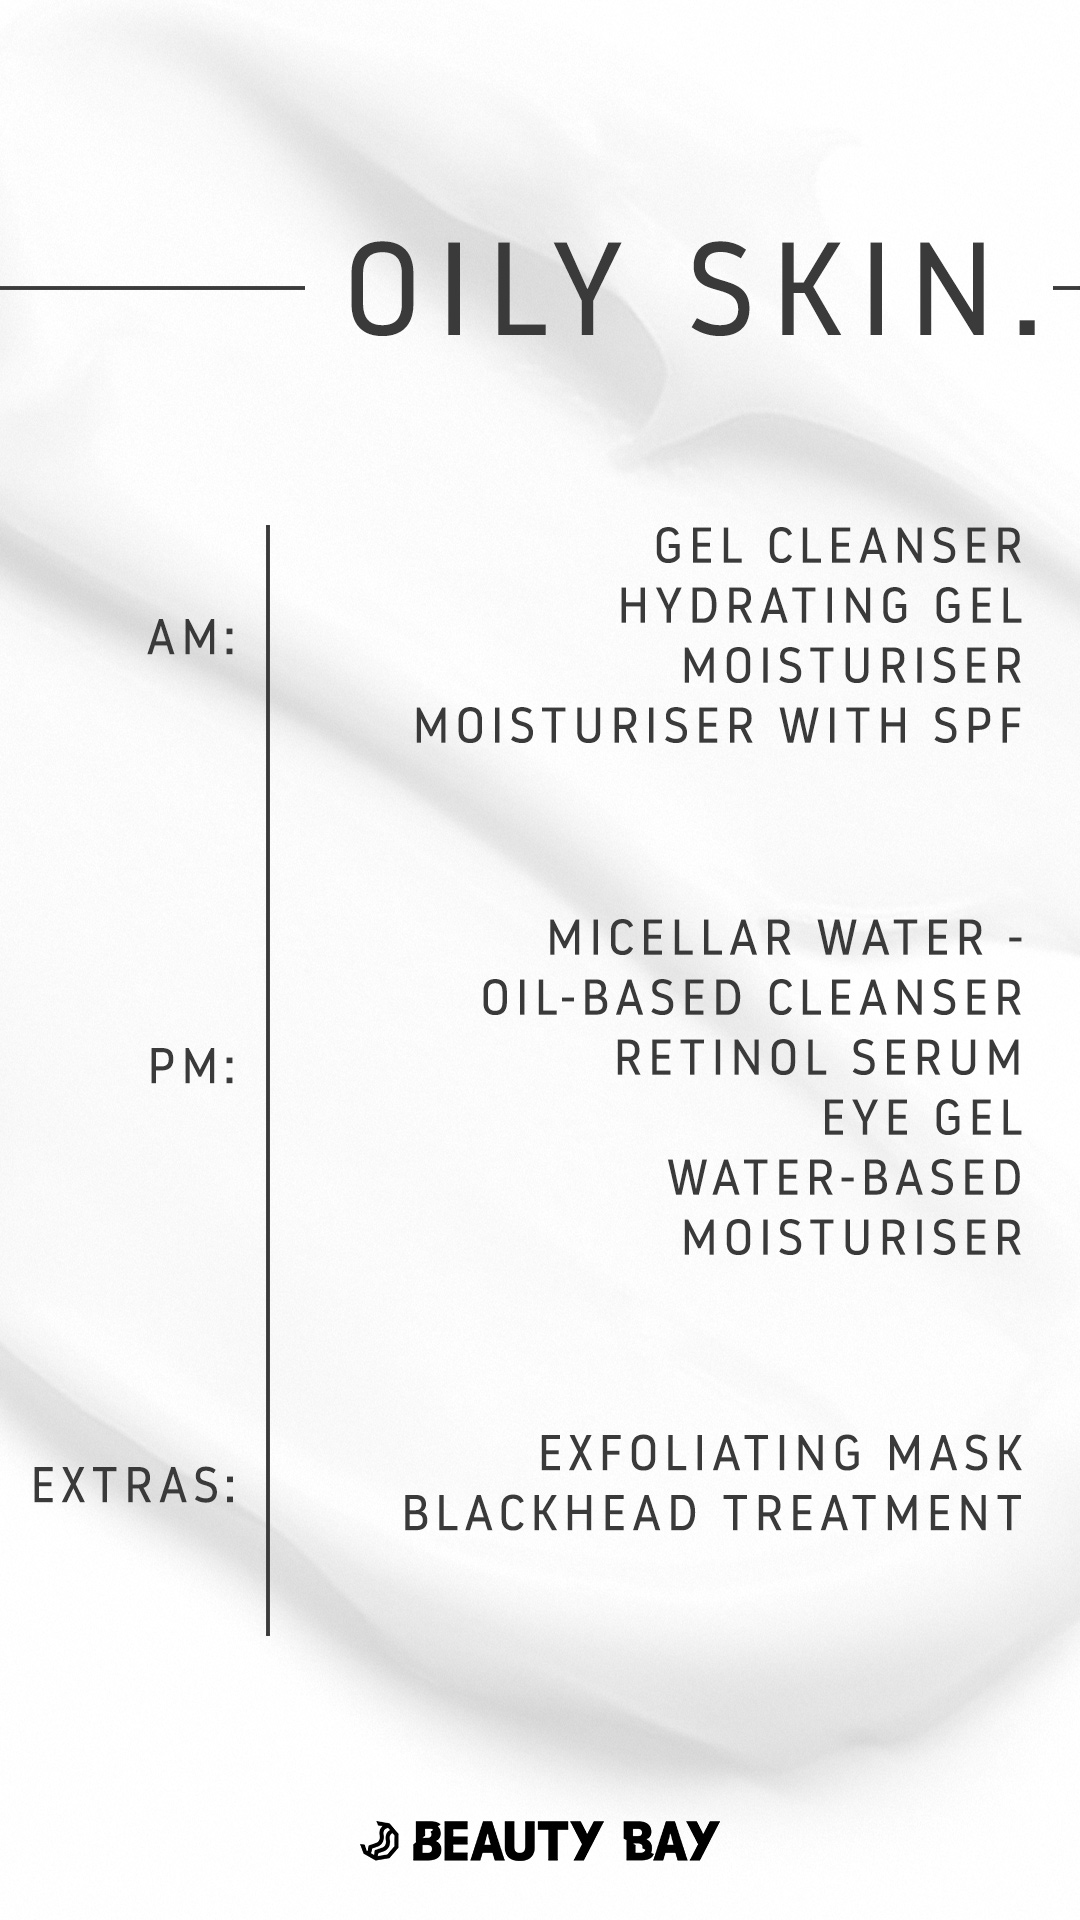 skincare-menu-oily